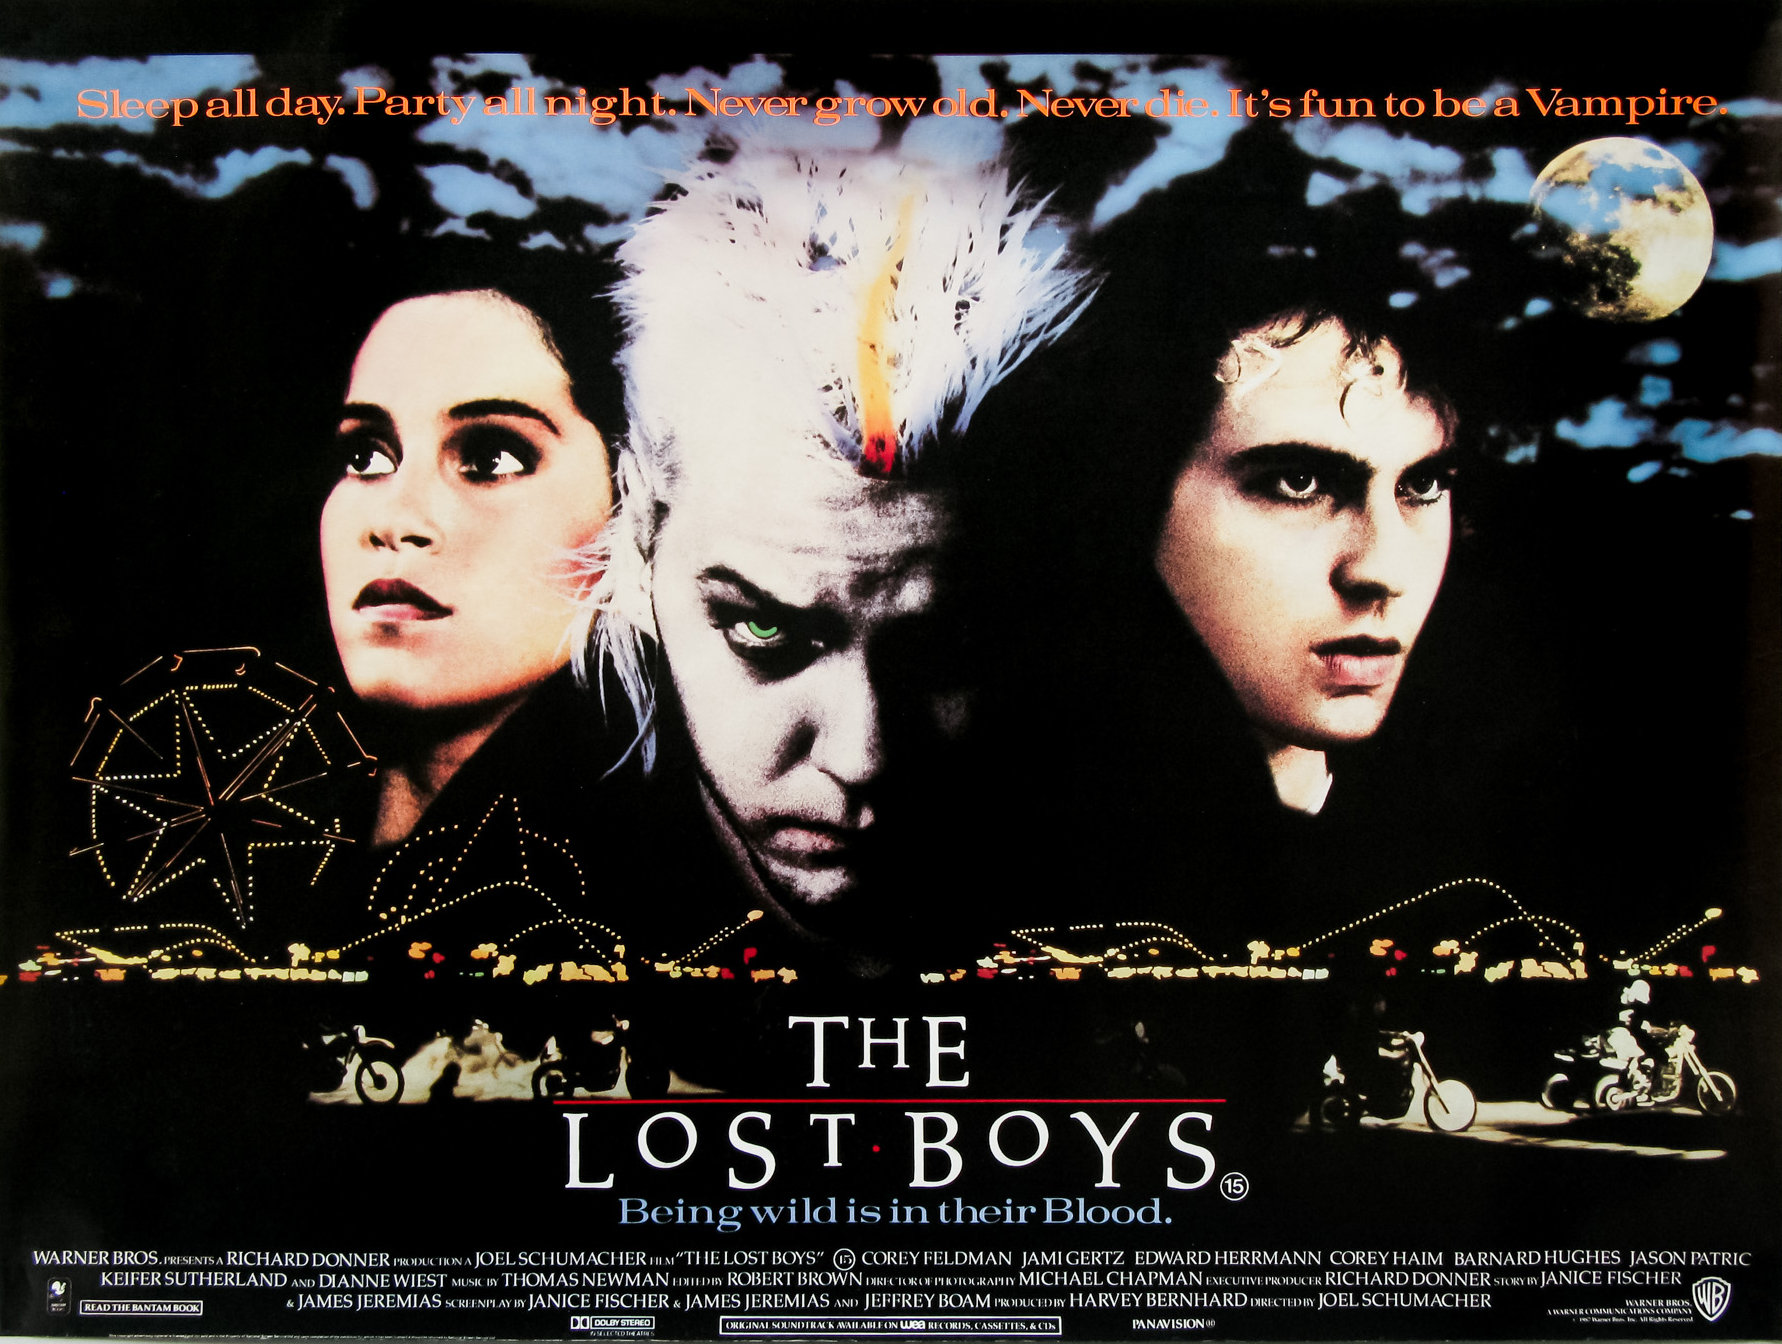 The Lost Boys featured